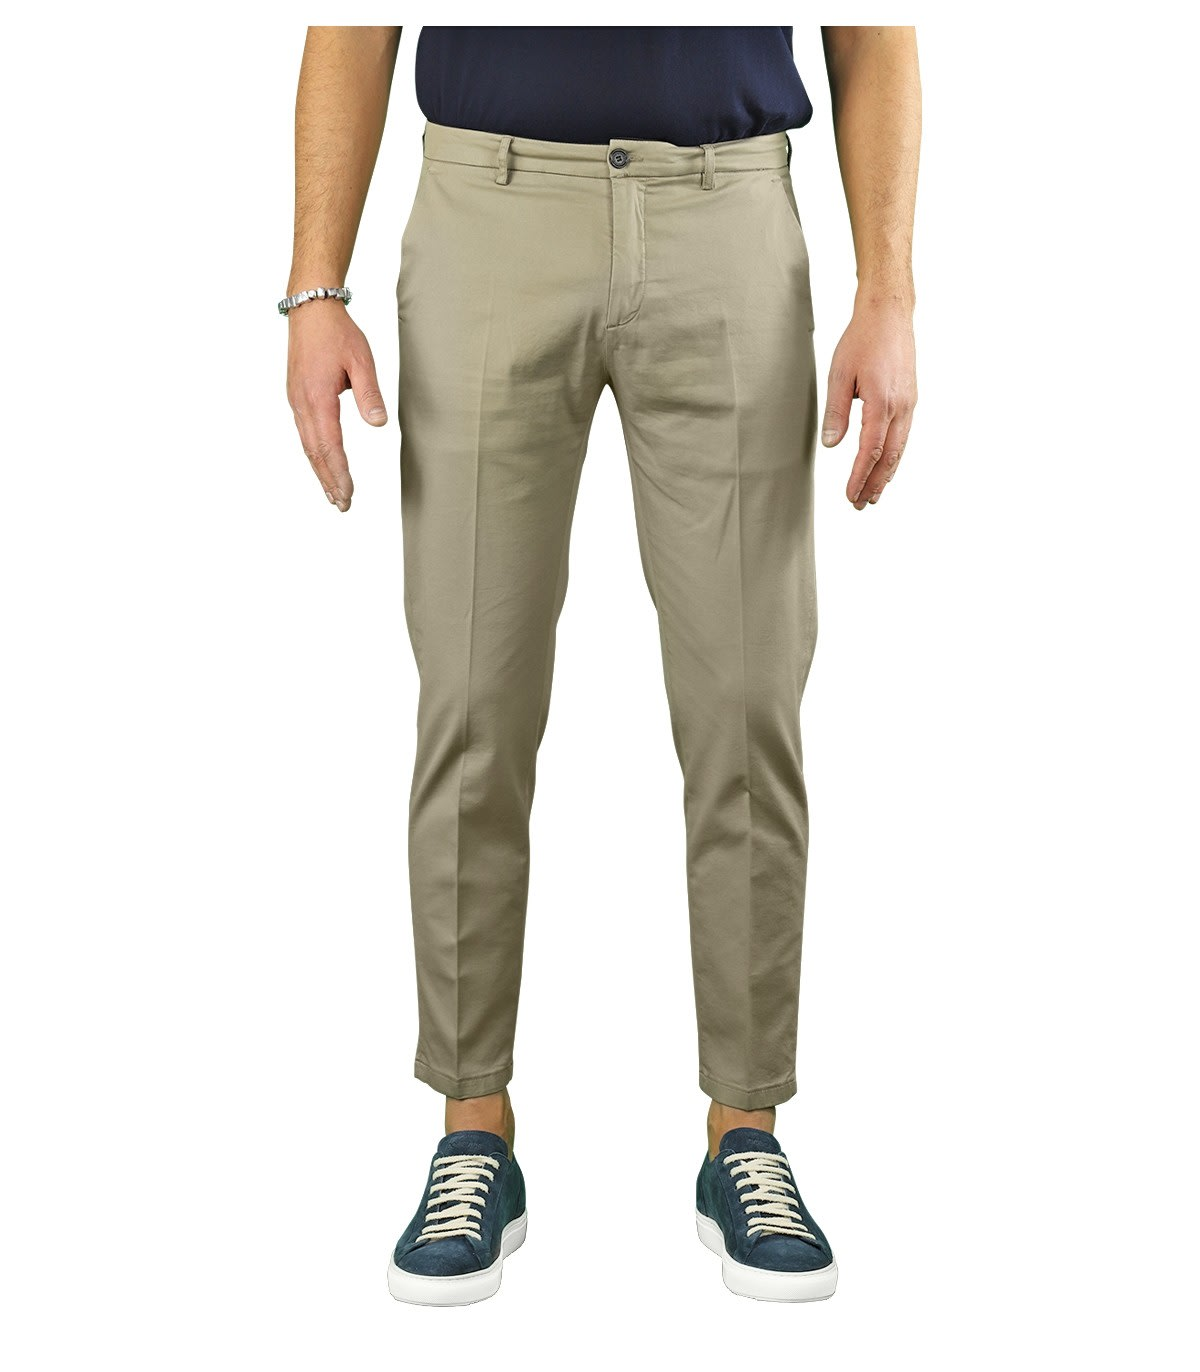 Department 5 Cottons PRINCE TAUPE CHINO TROUSERS